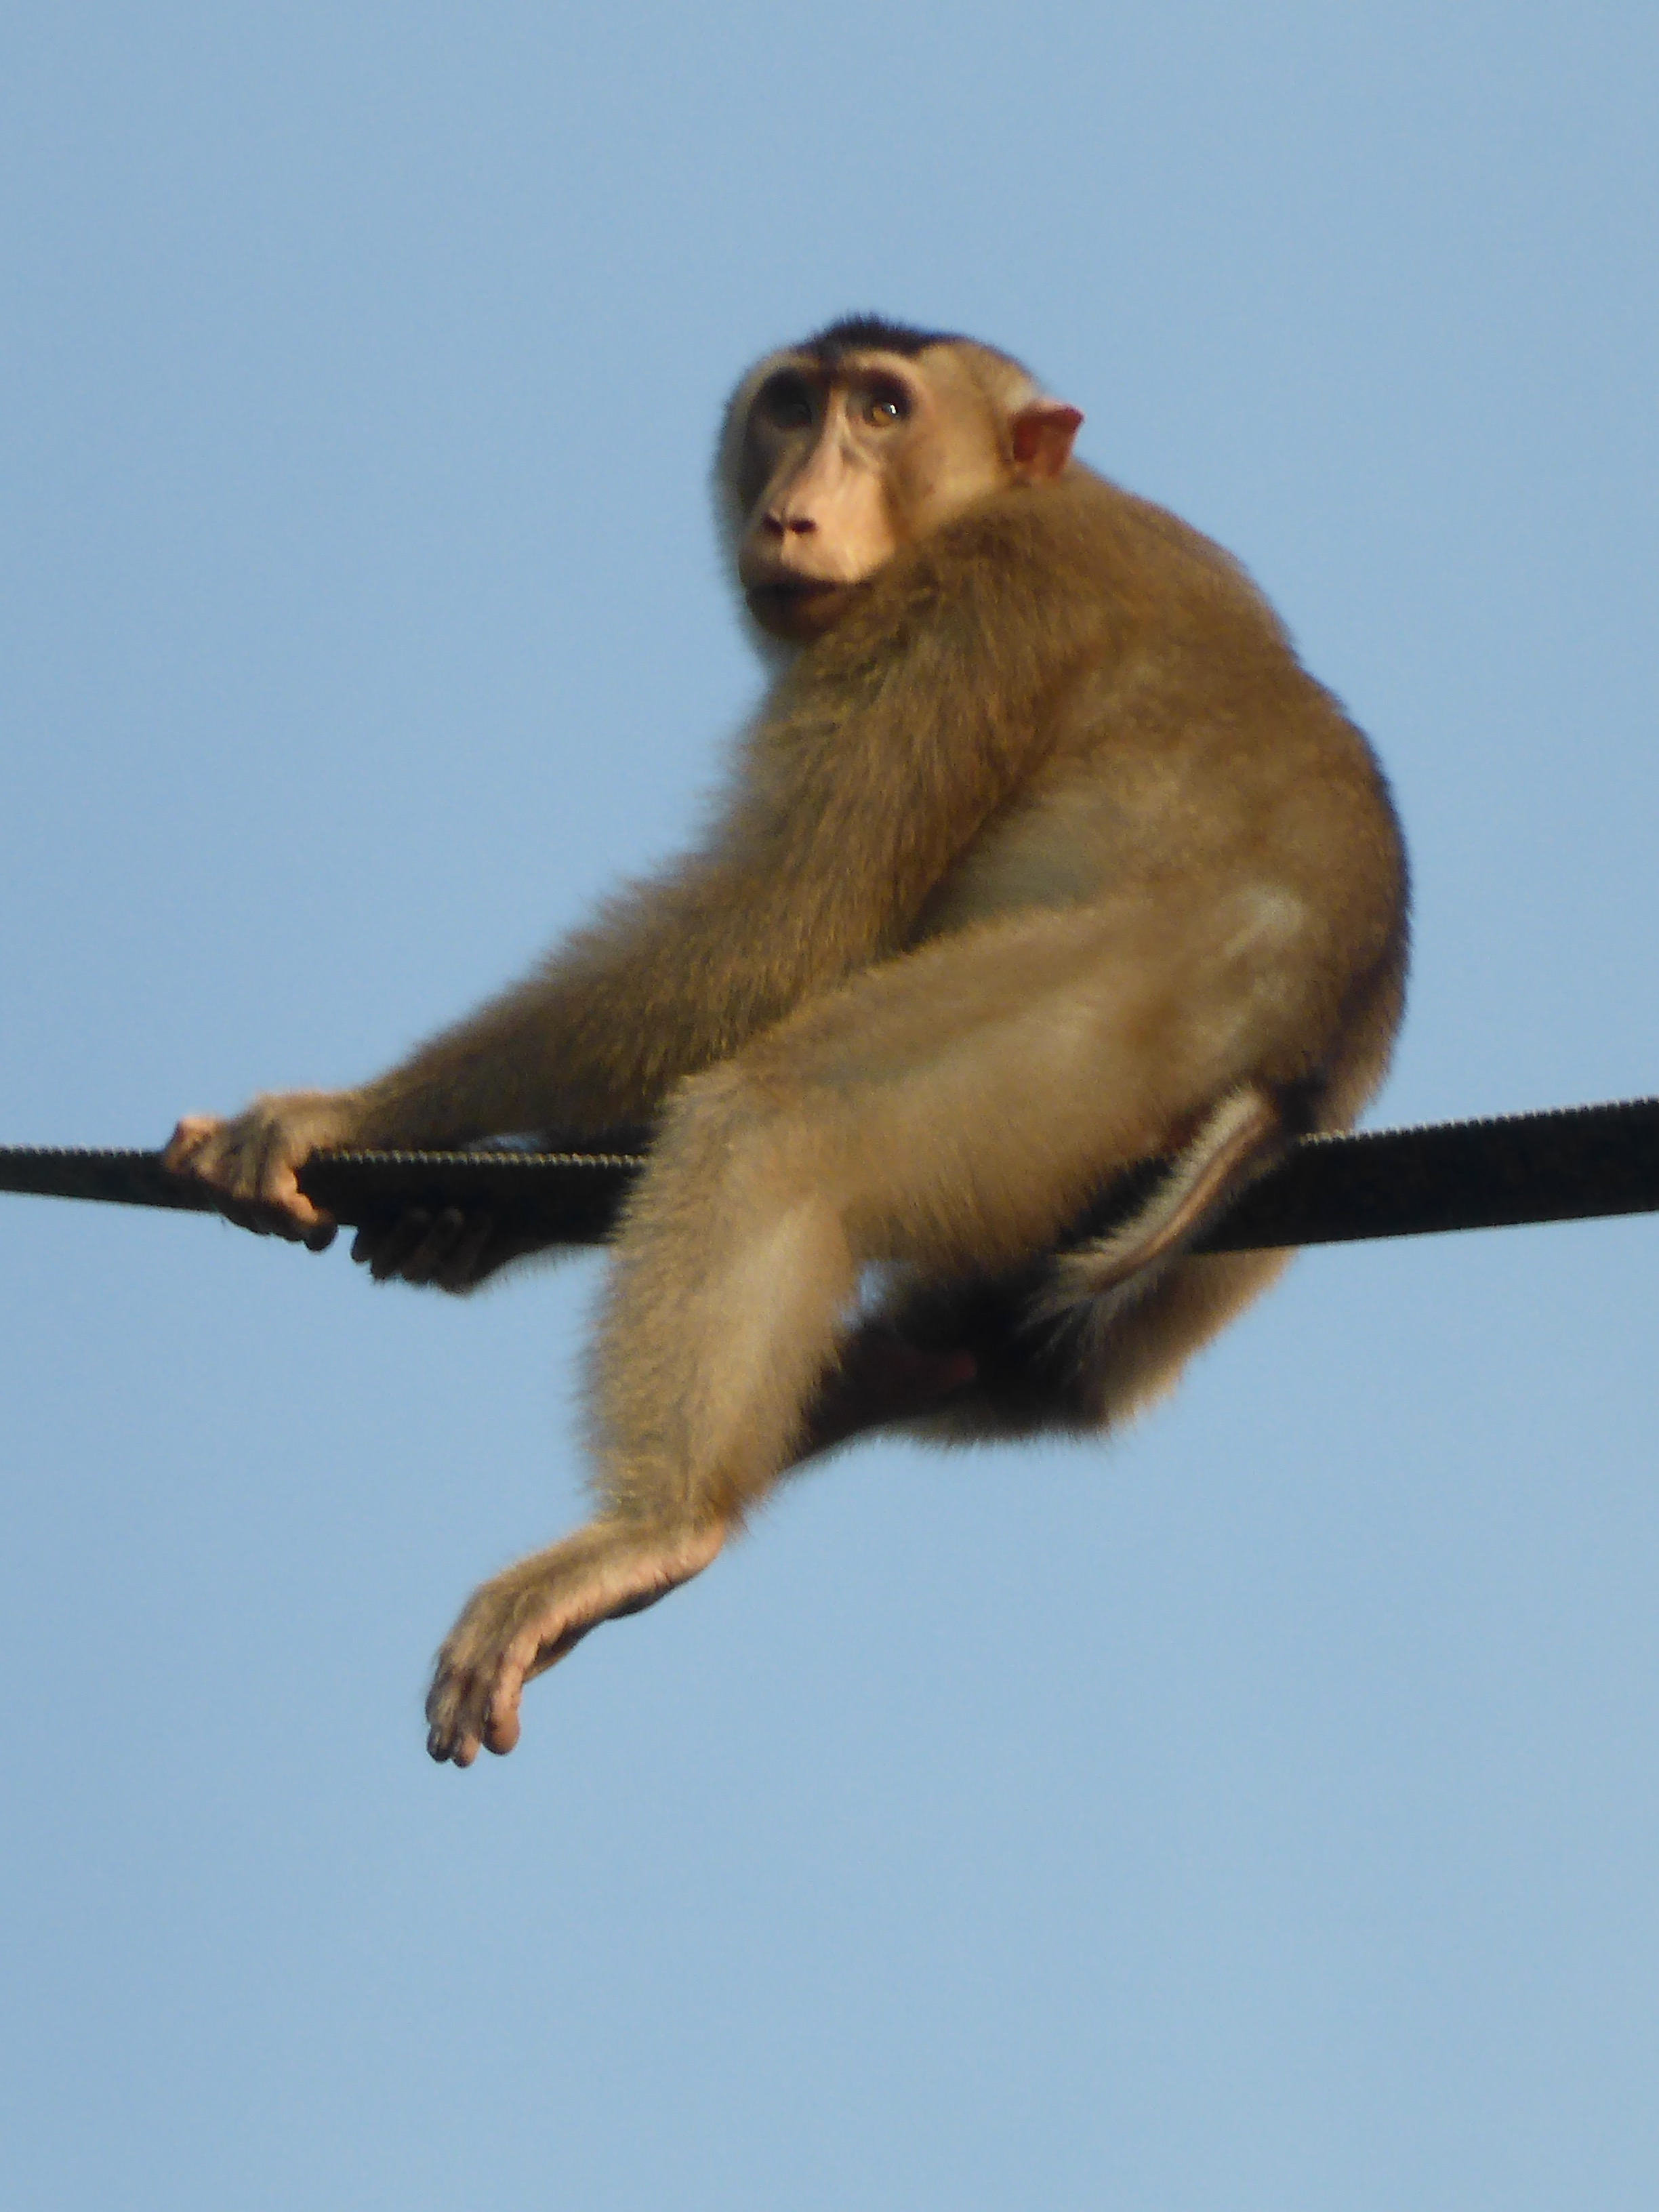 monkey sitting on rope bridge